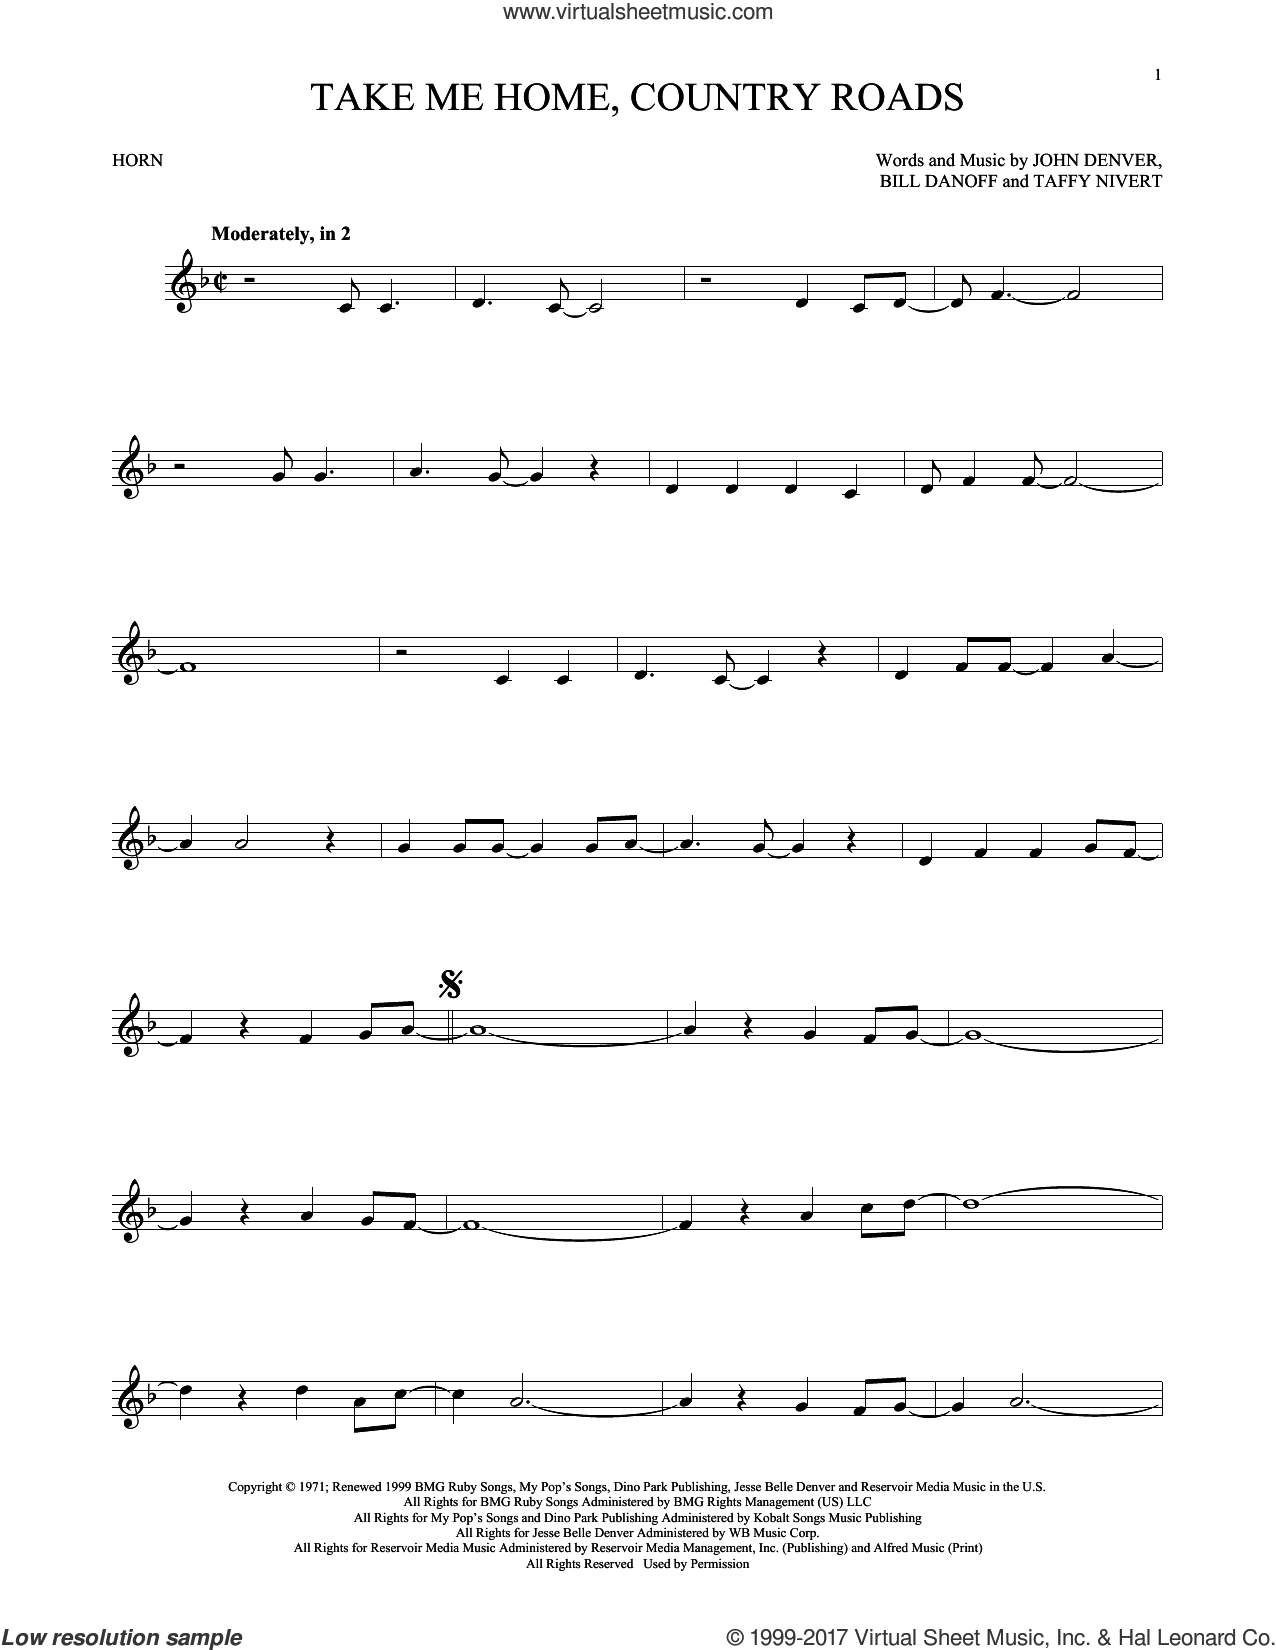 Take Me Home, Country Roads sheet music for horn solo by John Denver, Bill Danoff and Taffy Nivert, intermediate. Score Image Preview.